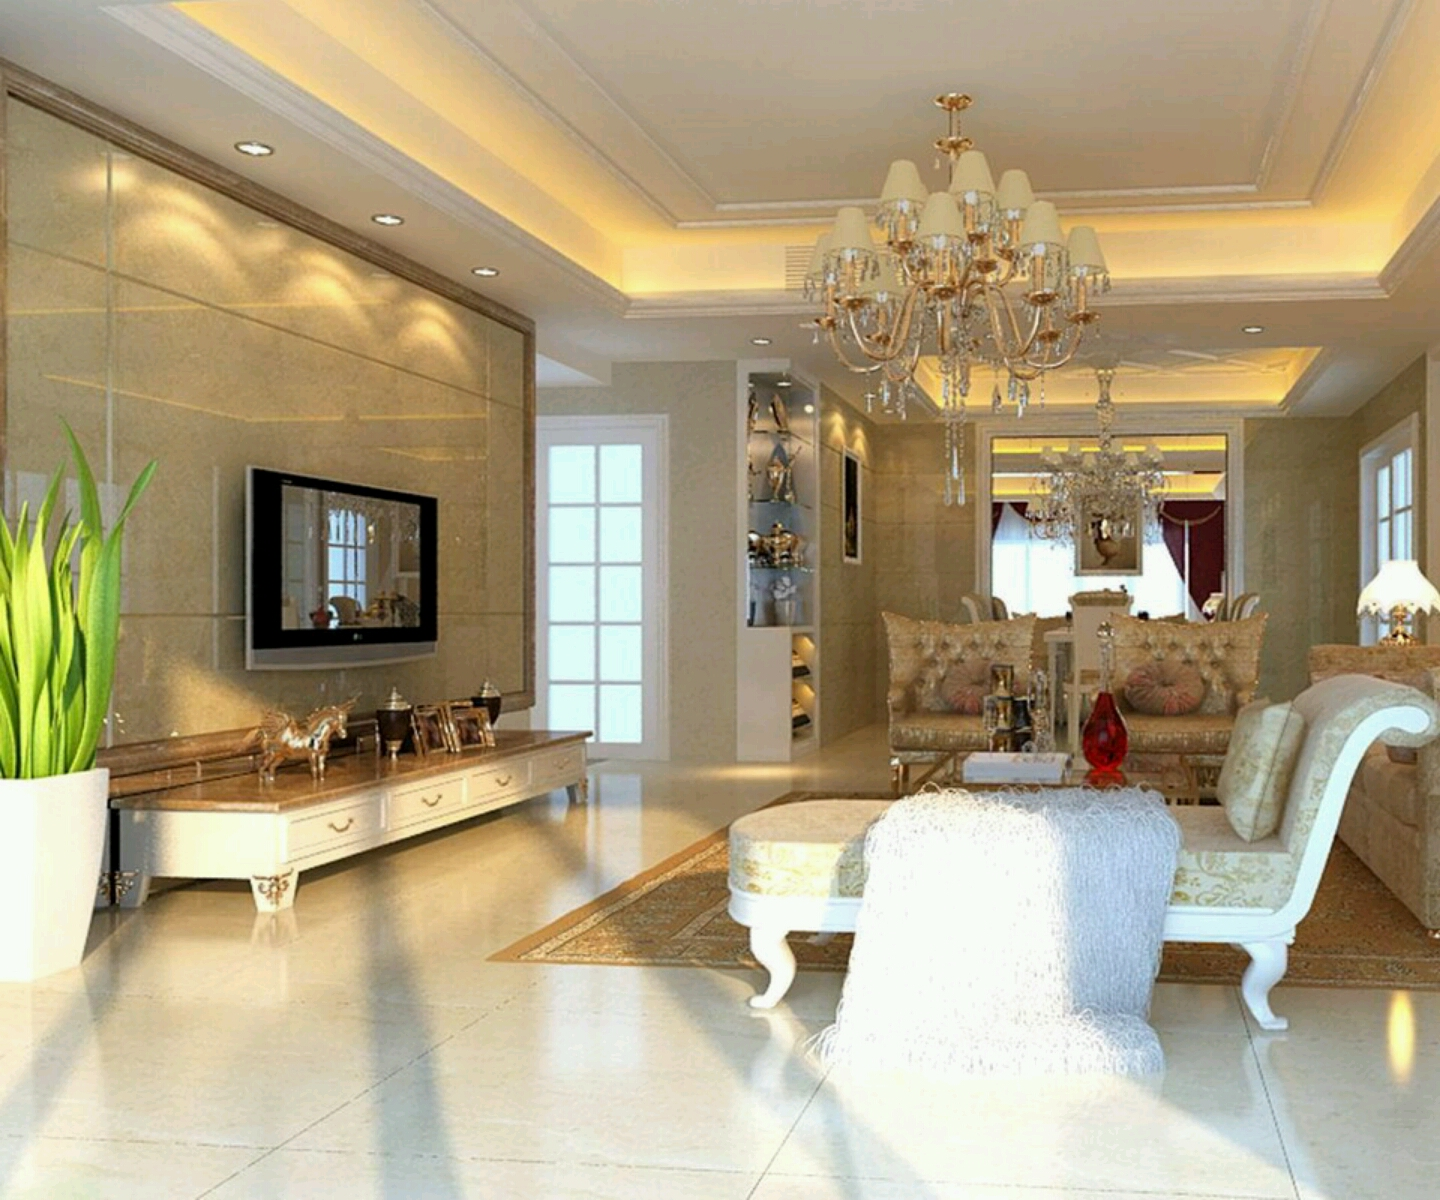 Luxury Interior Designs: Luxury Home Interior